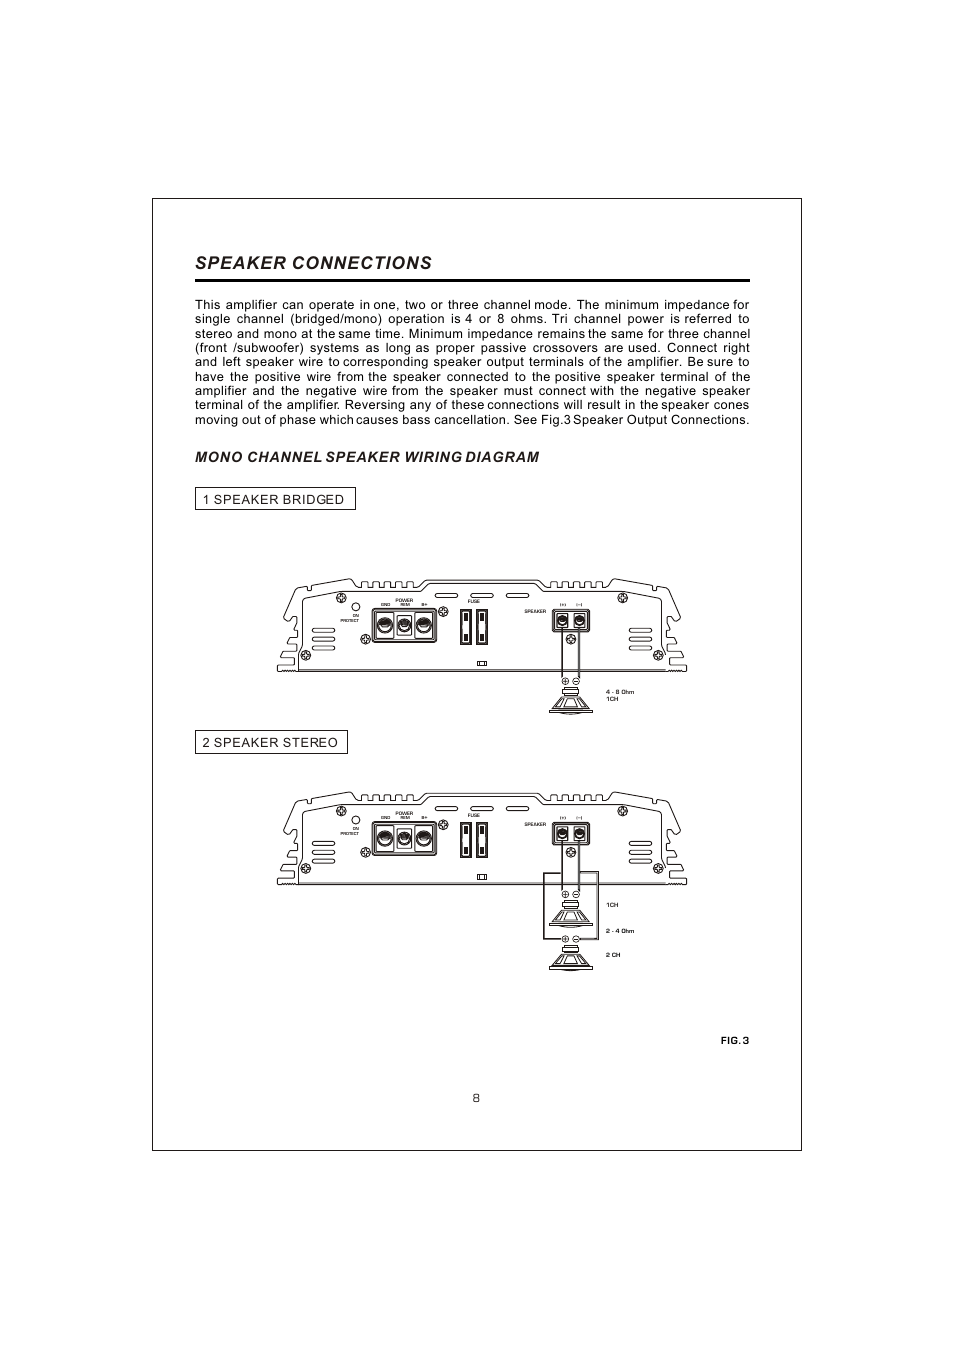 medium resolution of  10 speaker connections mono channel speaker wiring diagram interfire audio tunn t 2130 user manual page 10 20